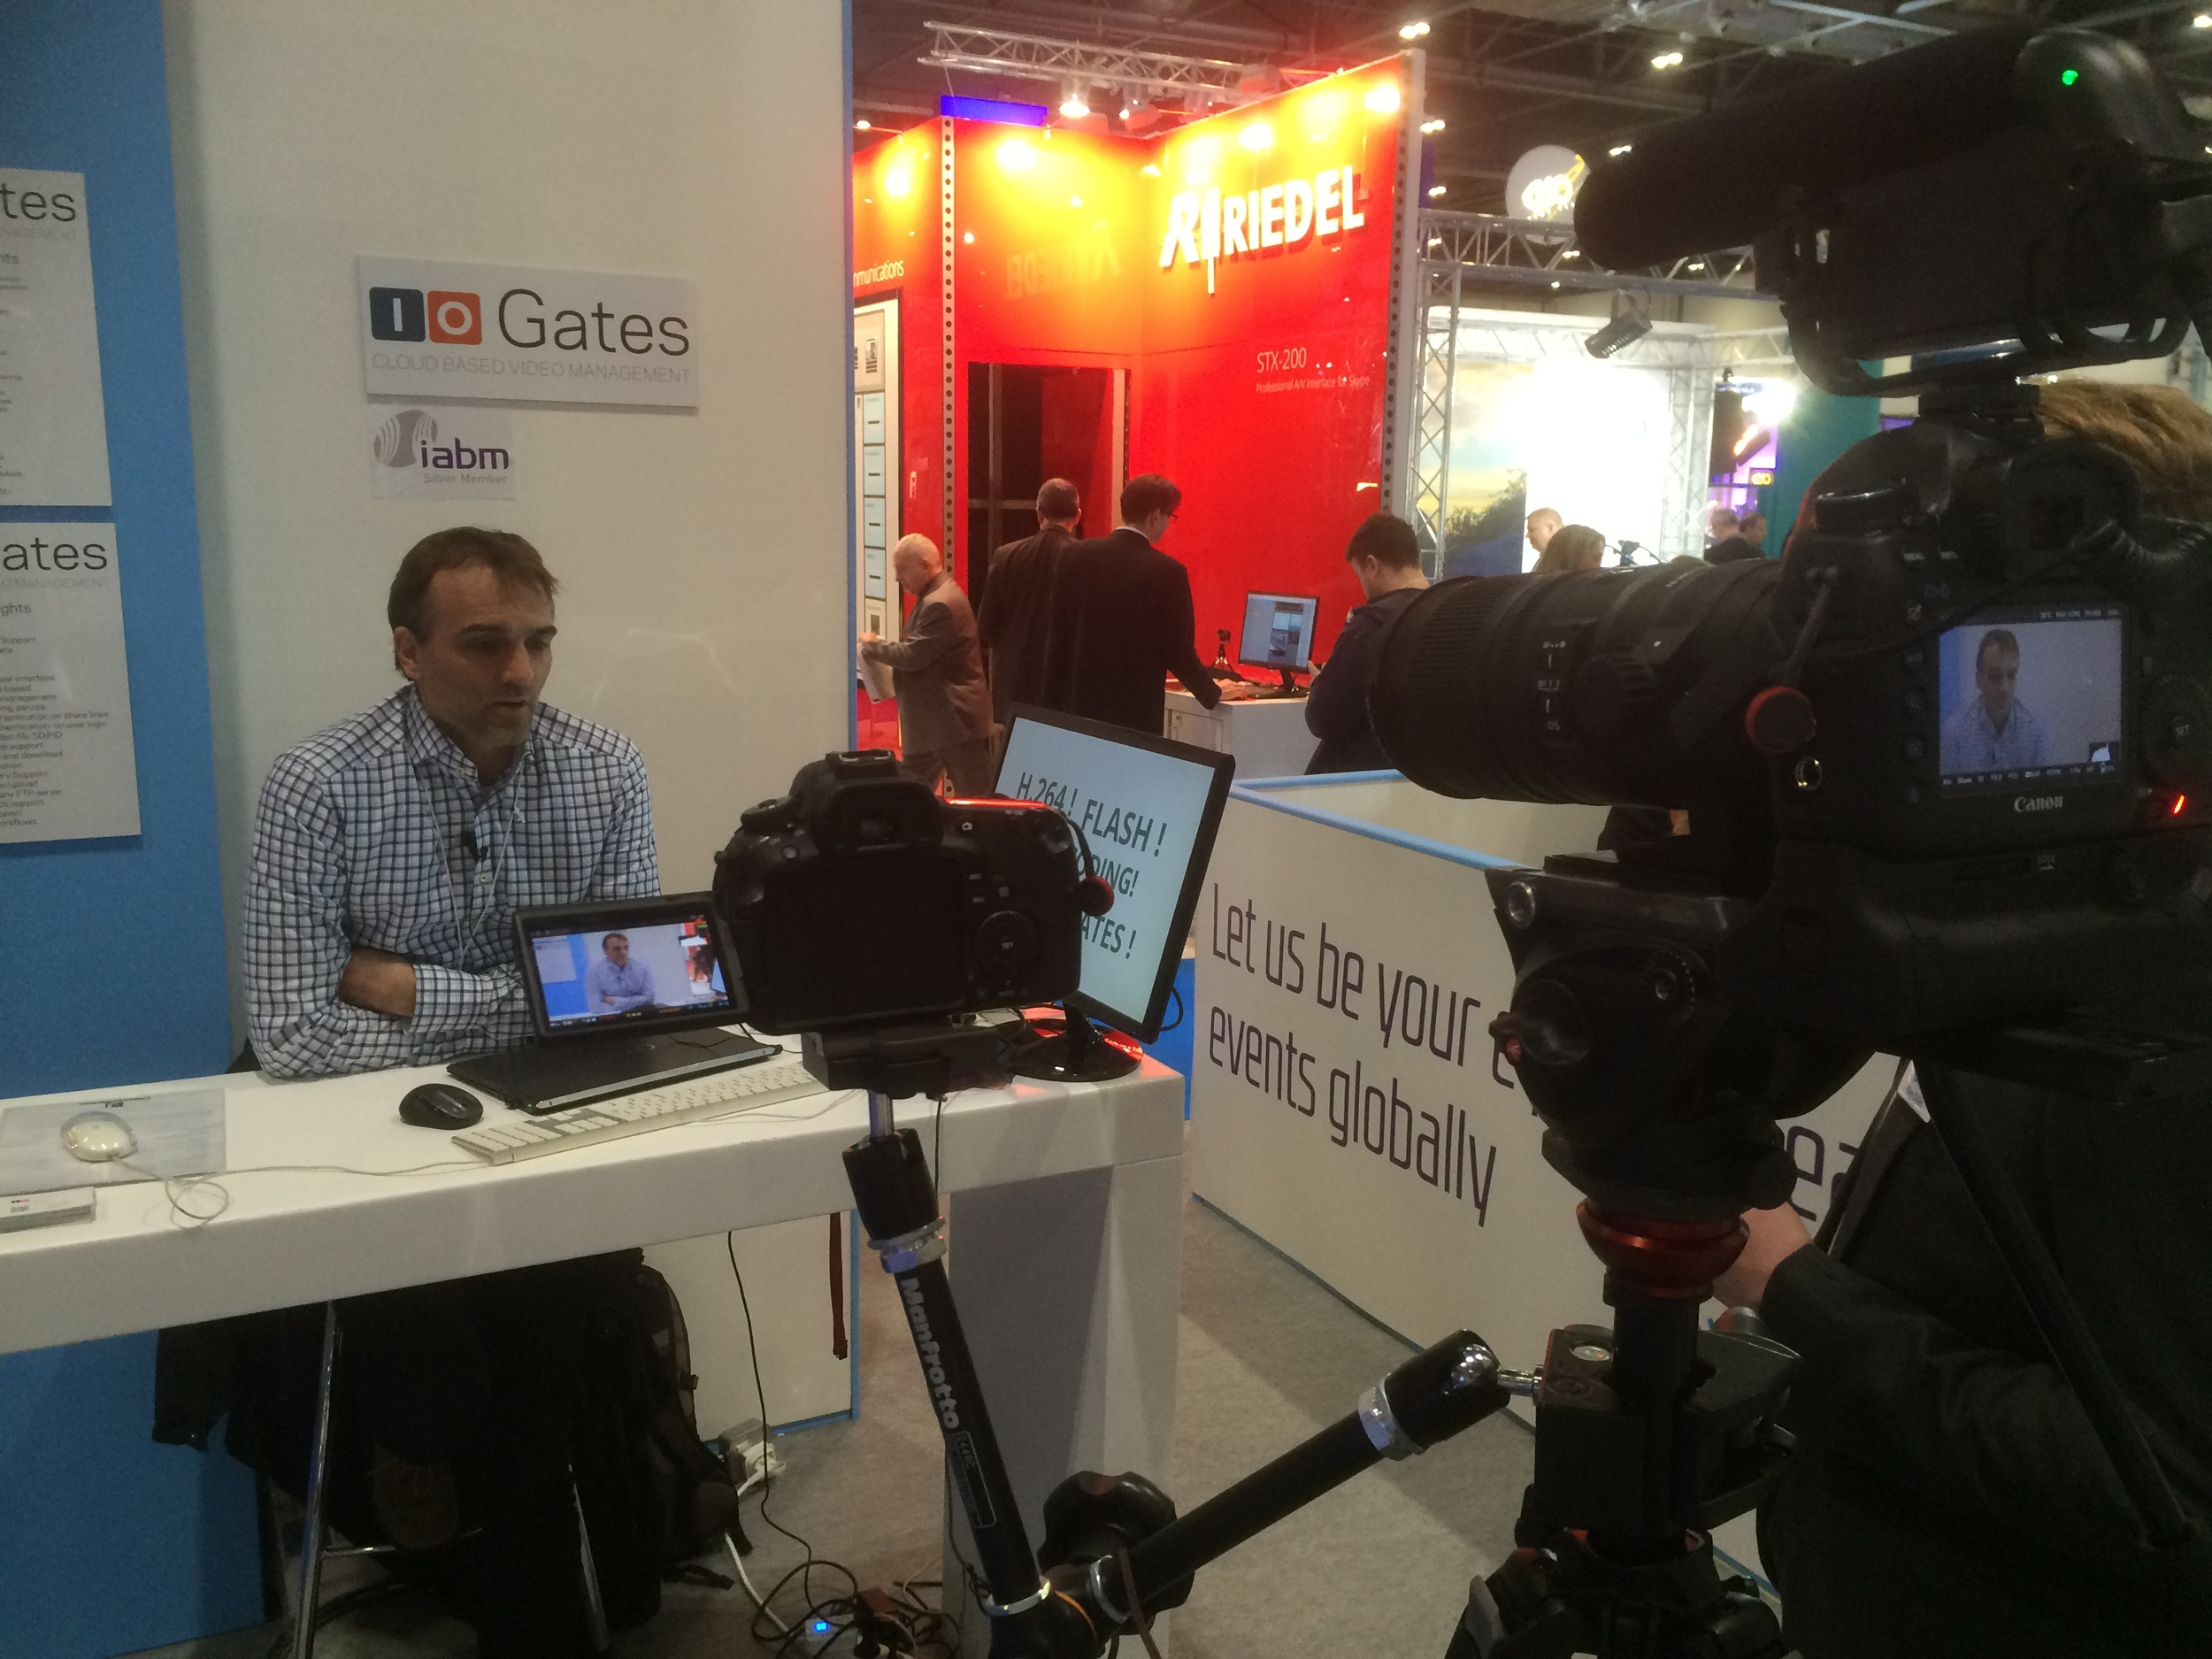 Jesper from ioGates talks to IABM TV about their BVE show experience and benefits of being a member